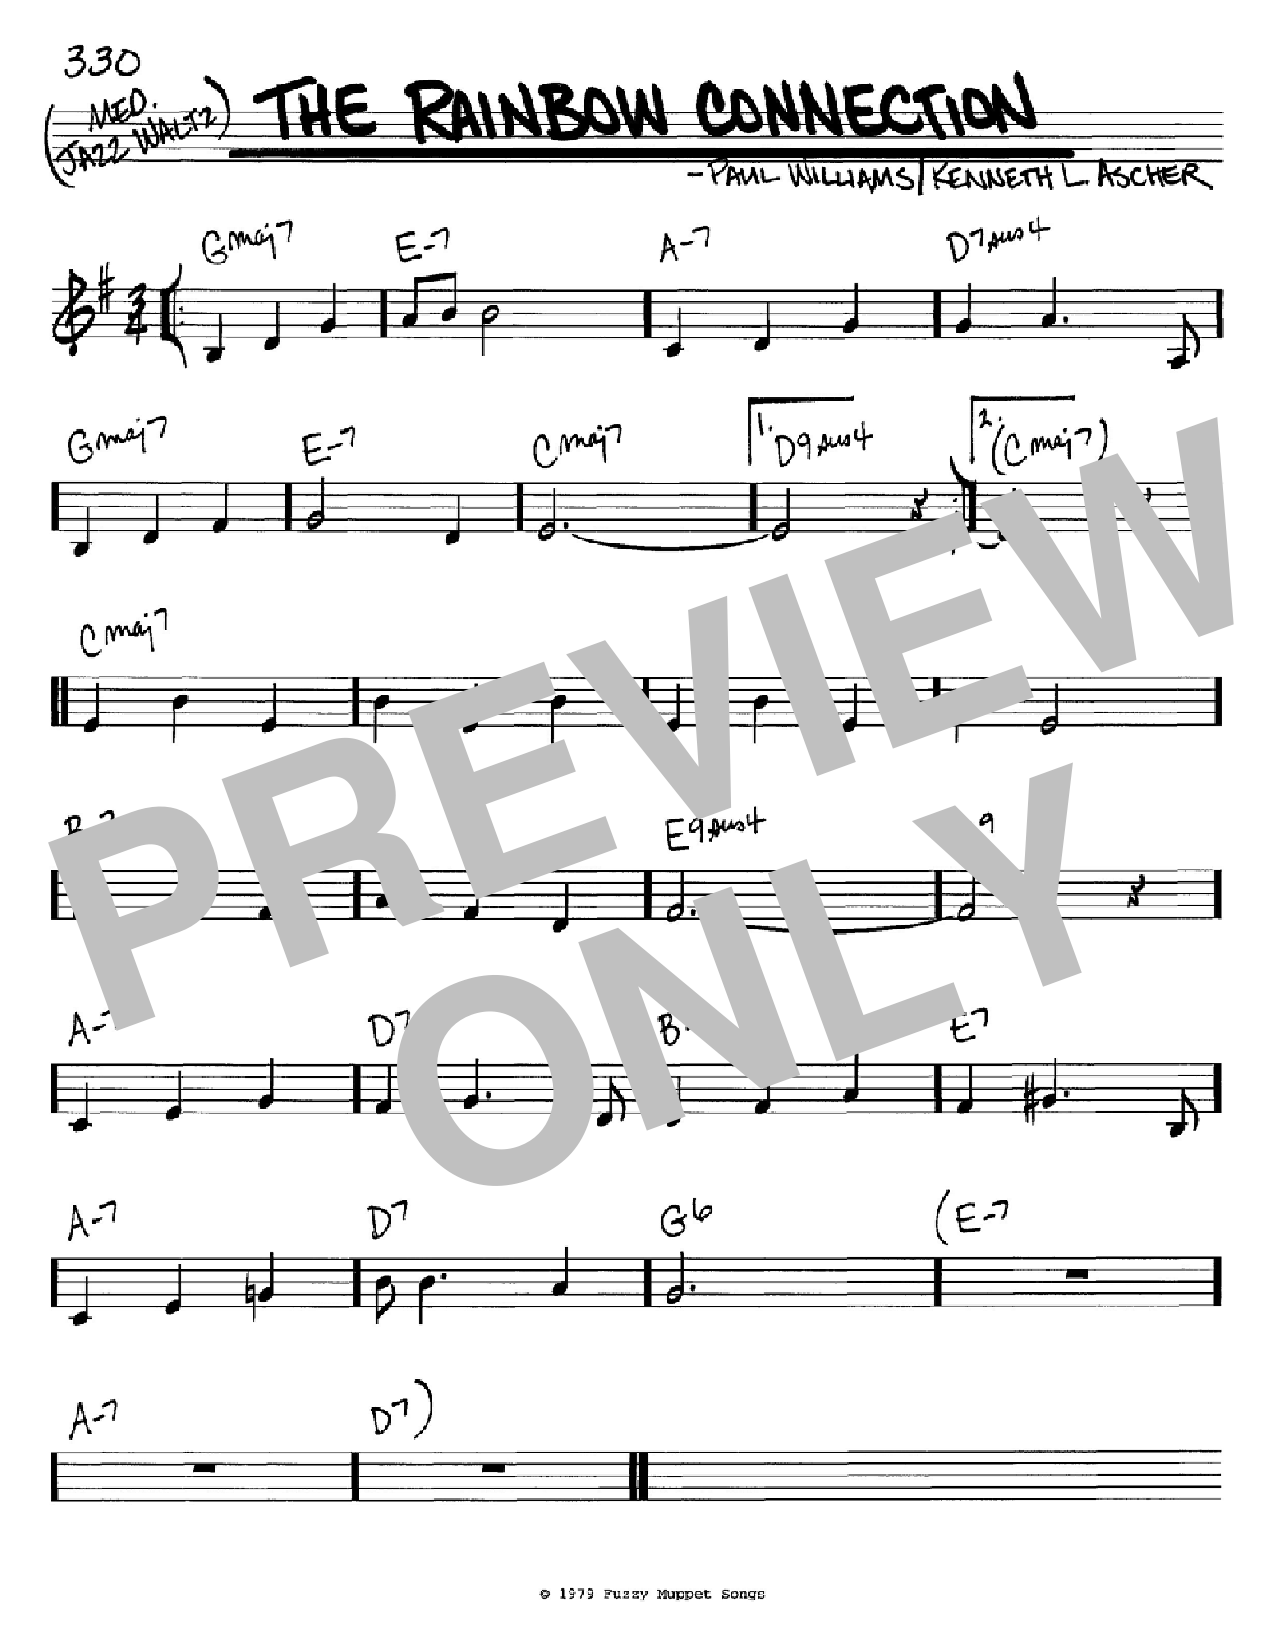 The Rainbow Connection Sheet Music